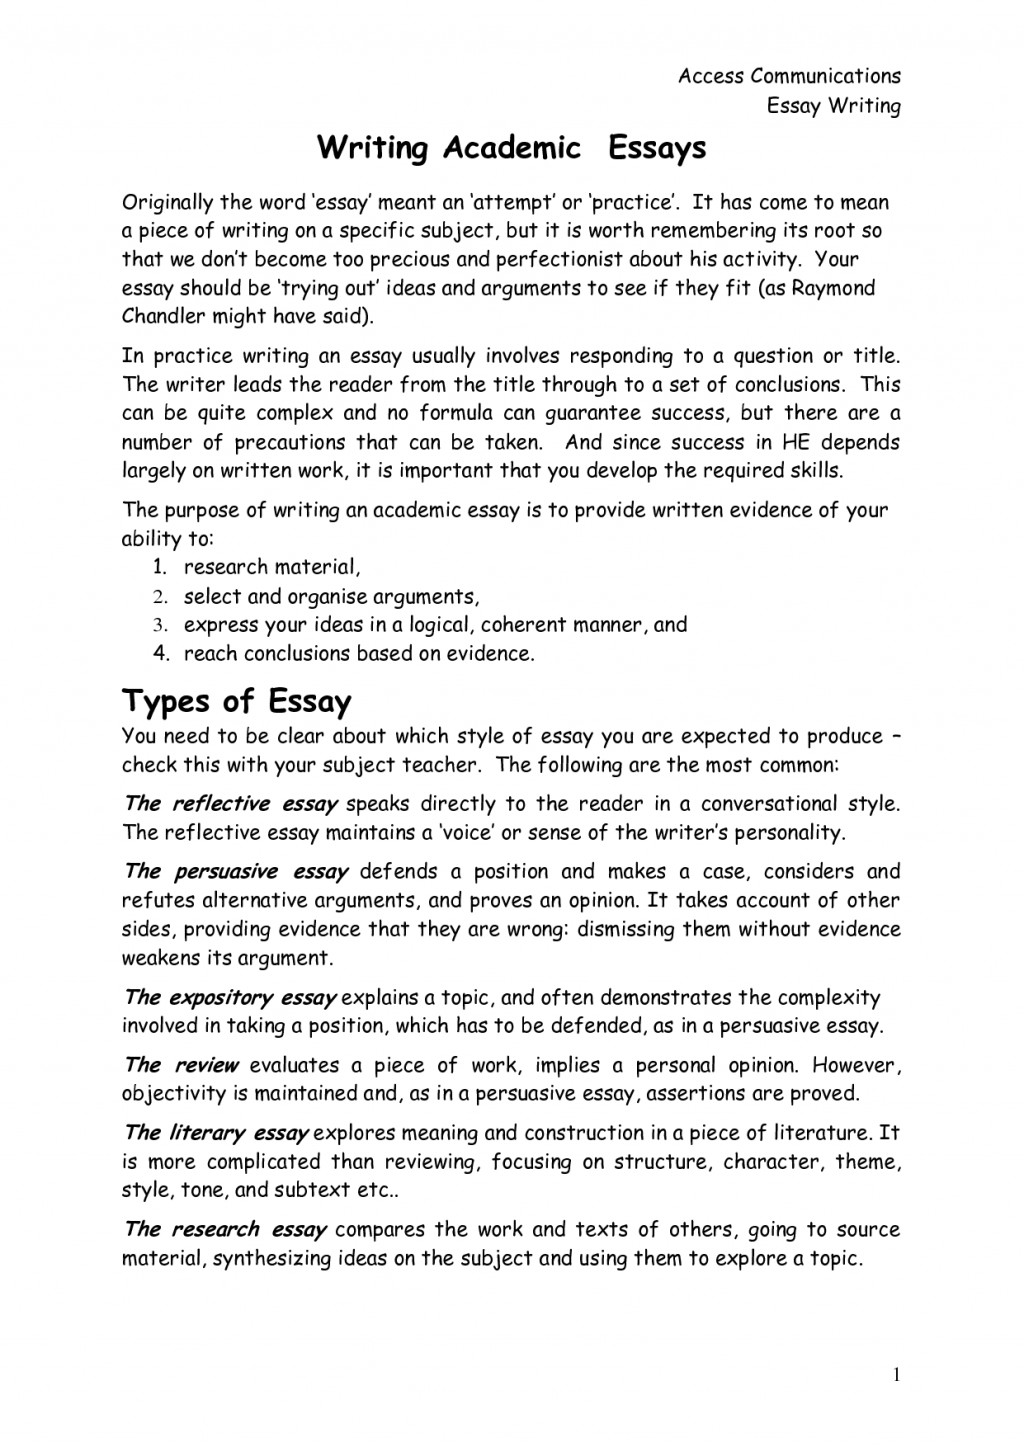 016 Reflective Essay On Academic Writings Beautiful Examples Writing Pdf College Sample Large